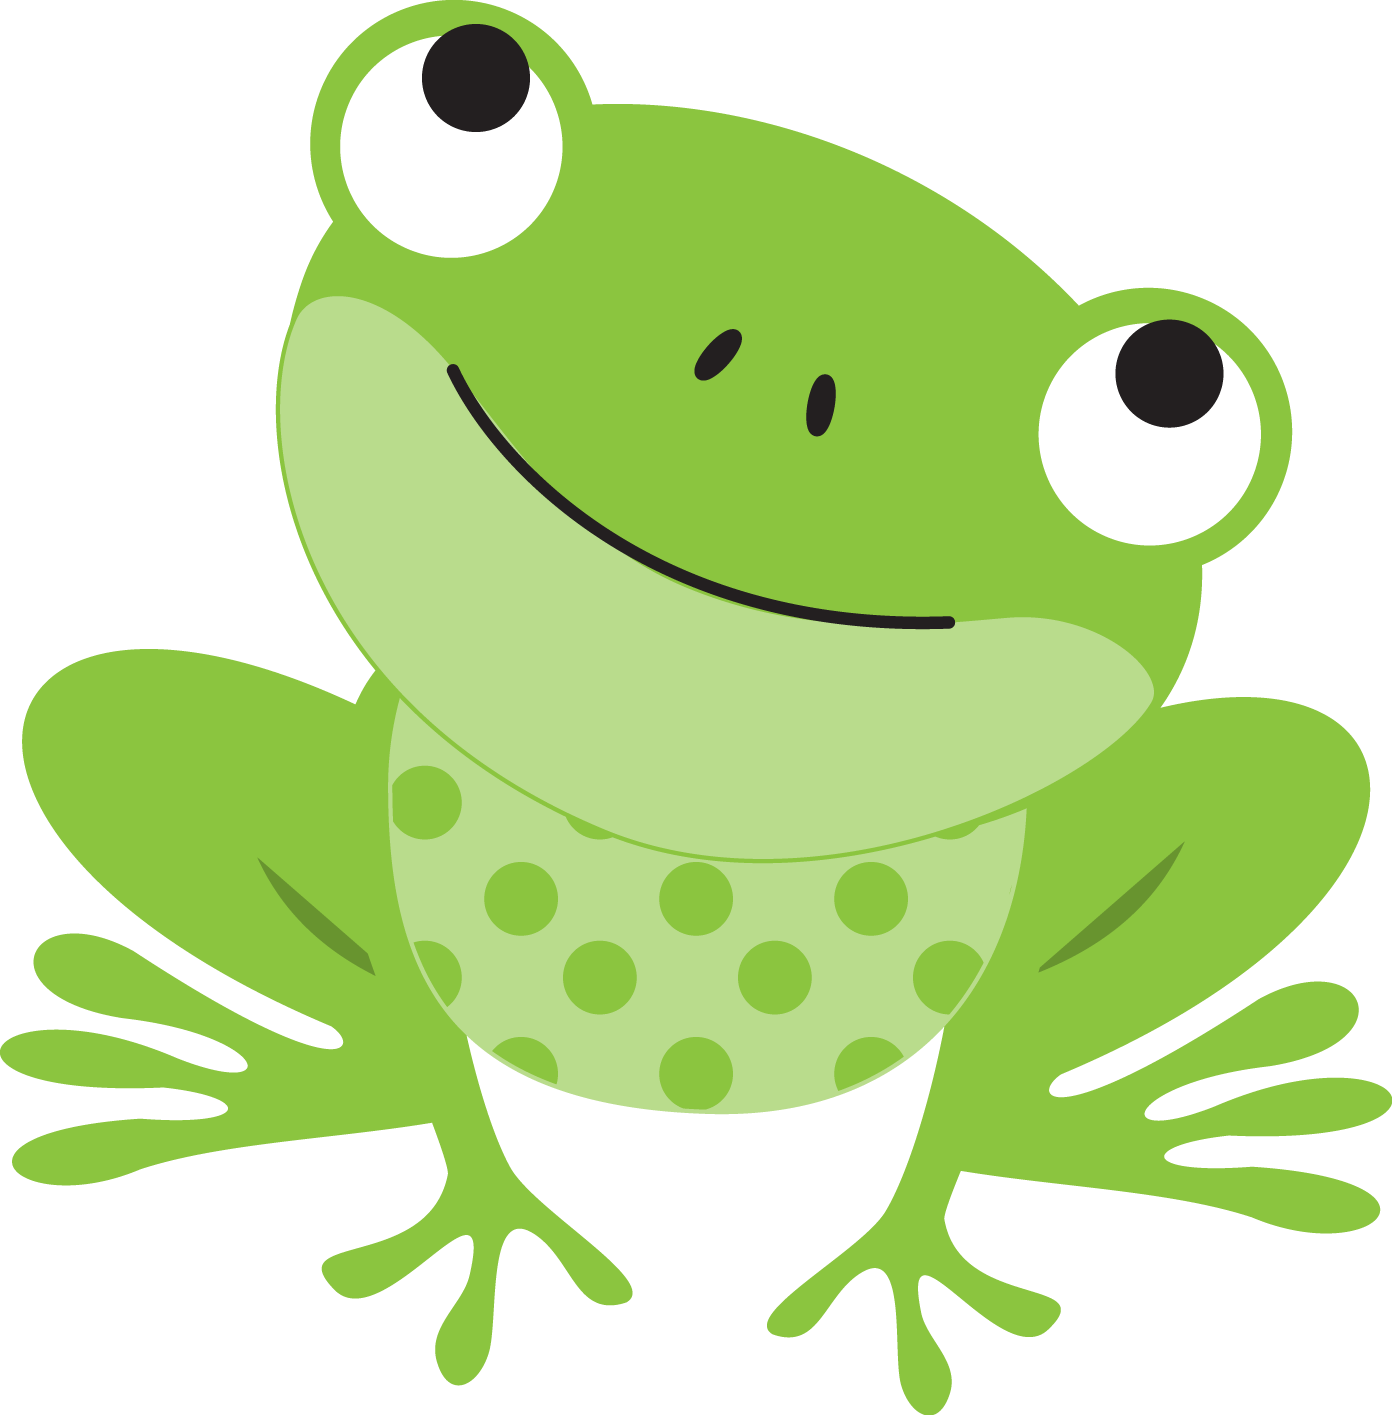 Frog clipart png picture free stock The Tree Frog Clip art - frog clipart png download - 1392*1415 ... picture free stock